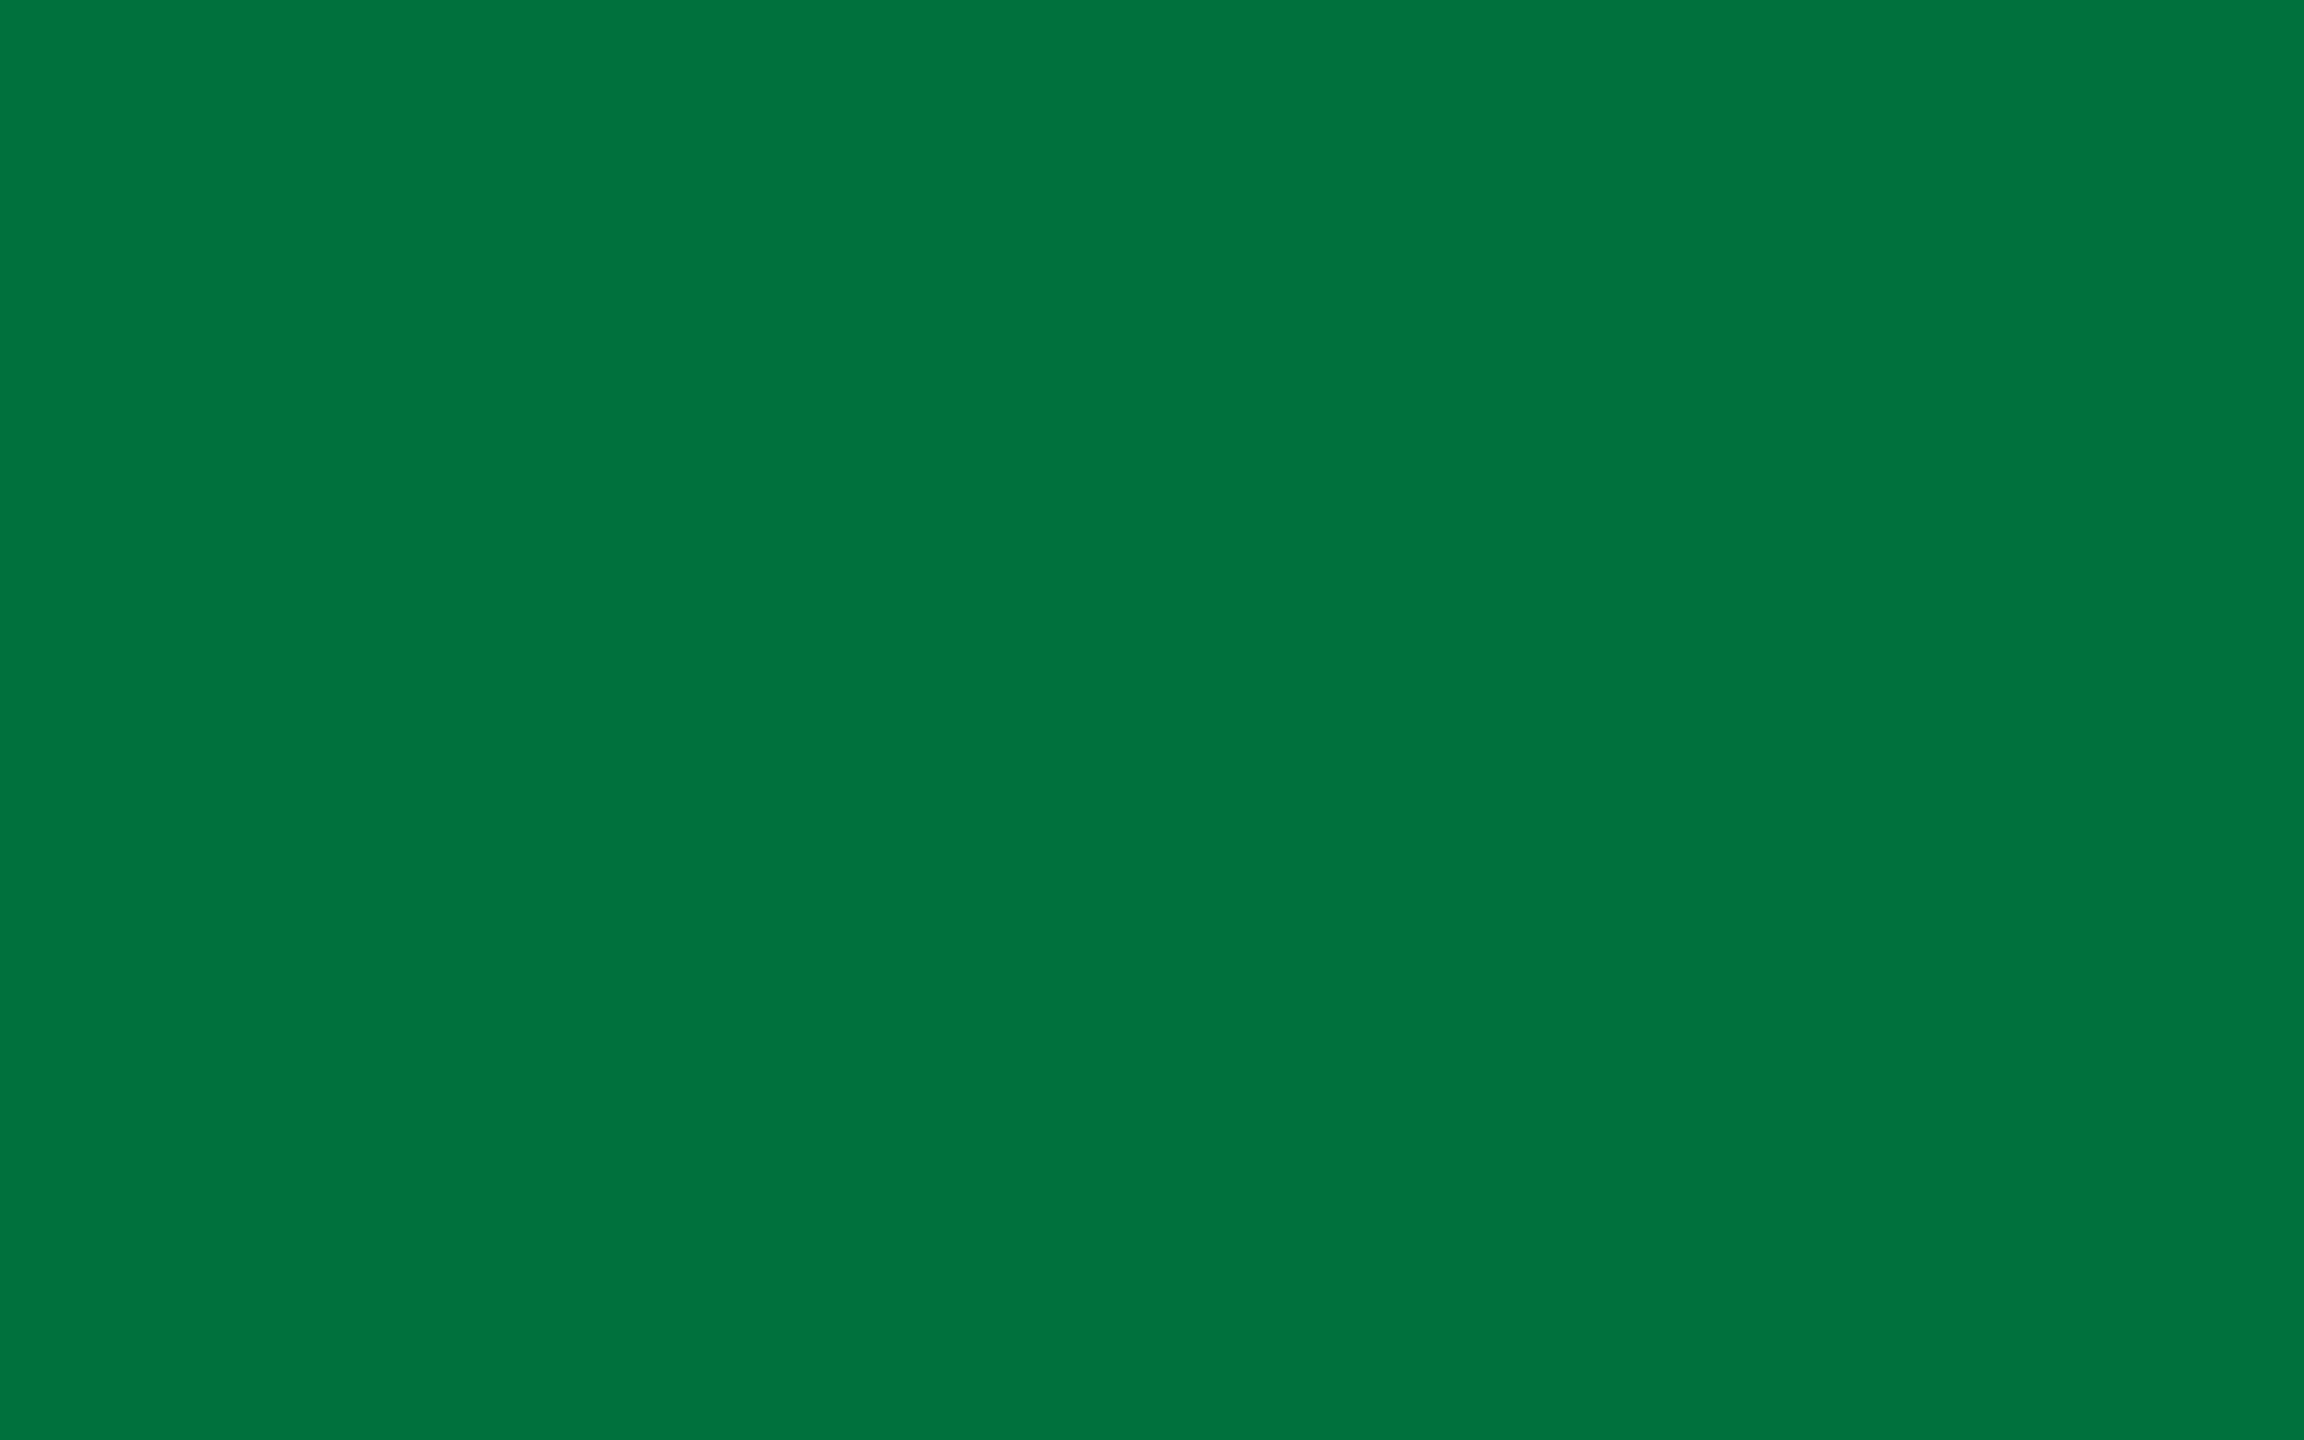 2304x1440 Dartmouth Green Solid Color Background